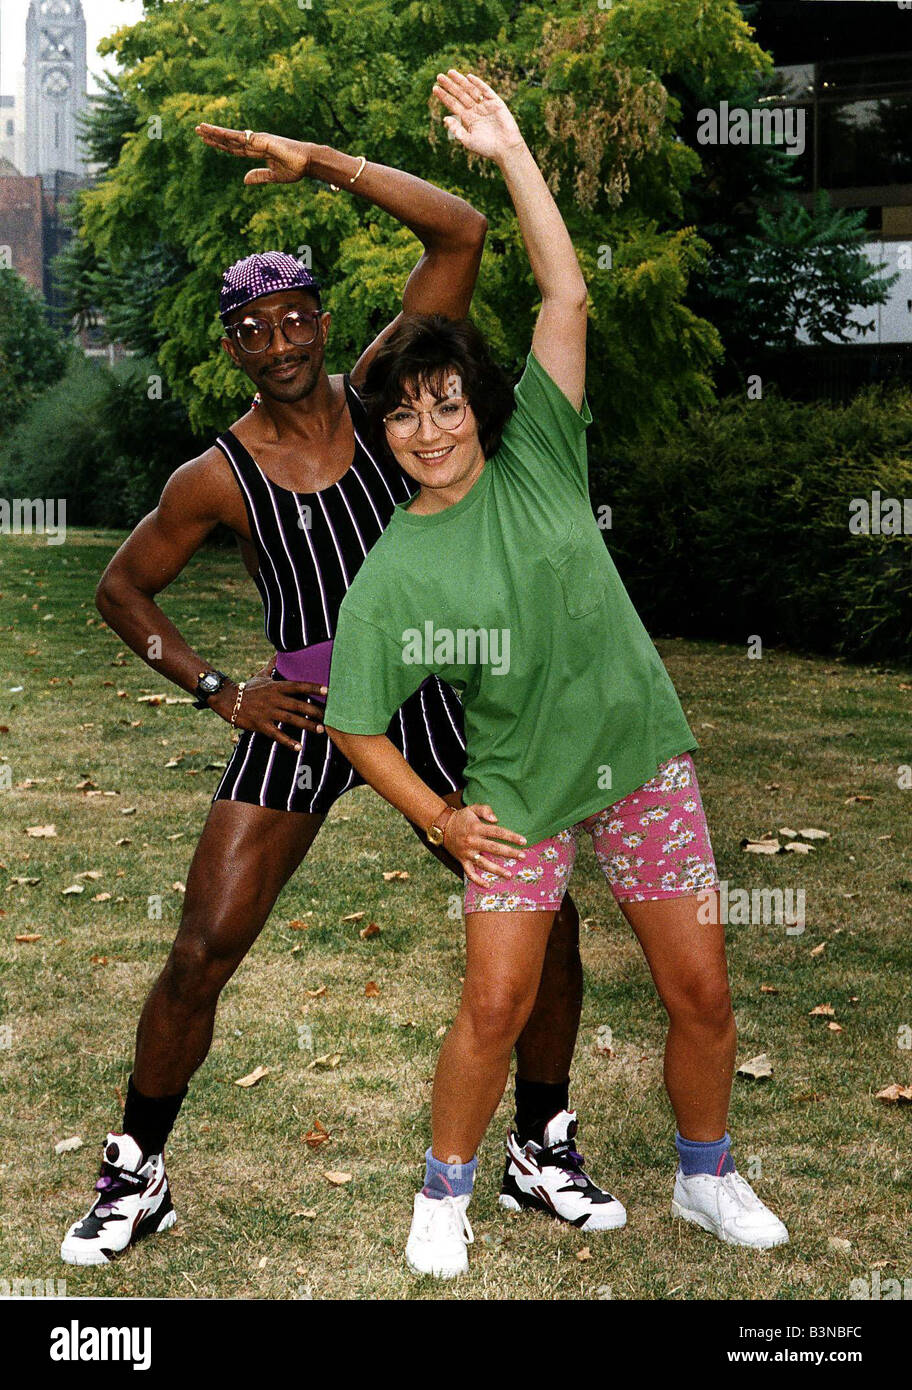 Mr Motivator High Resolution Stock Photography And Images Alamy